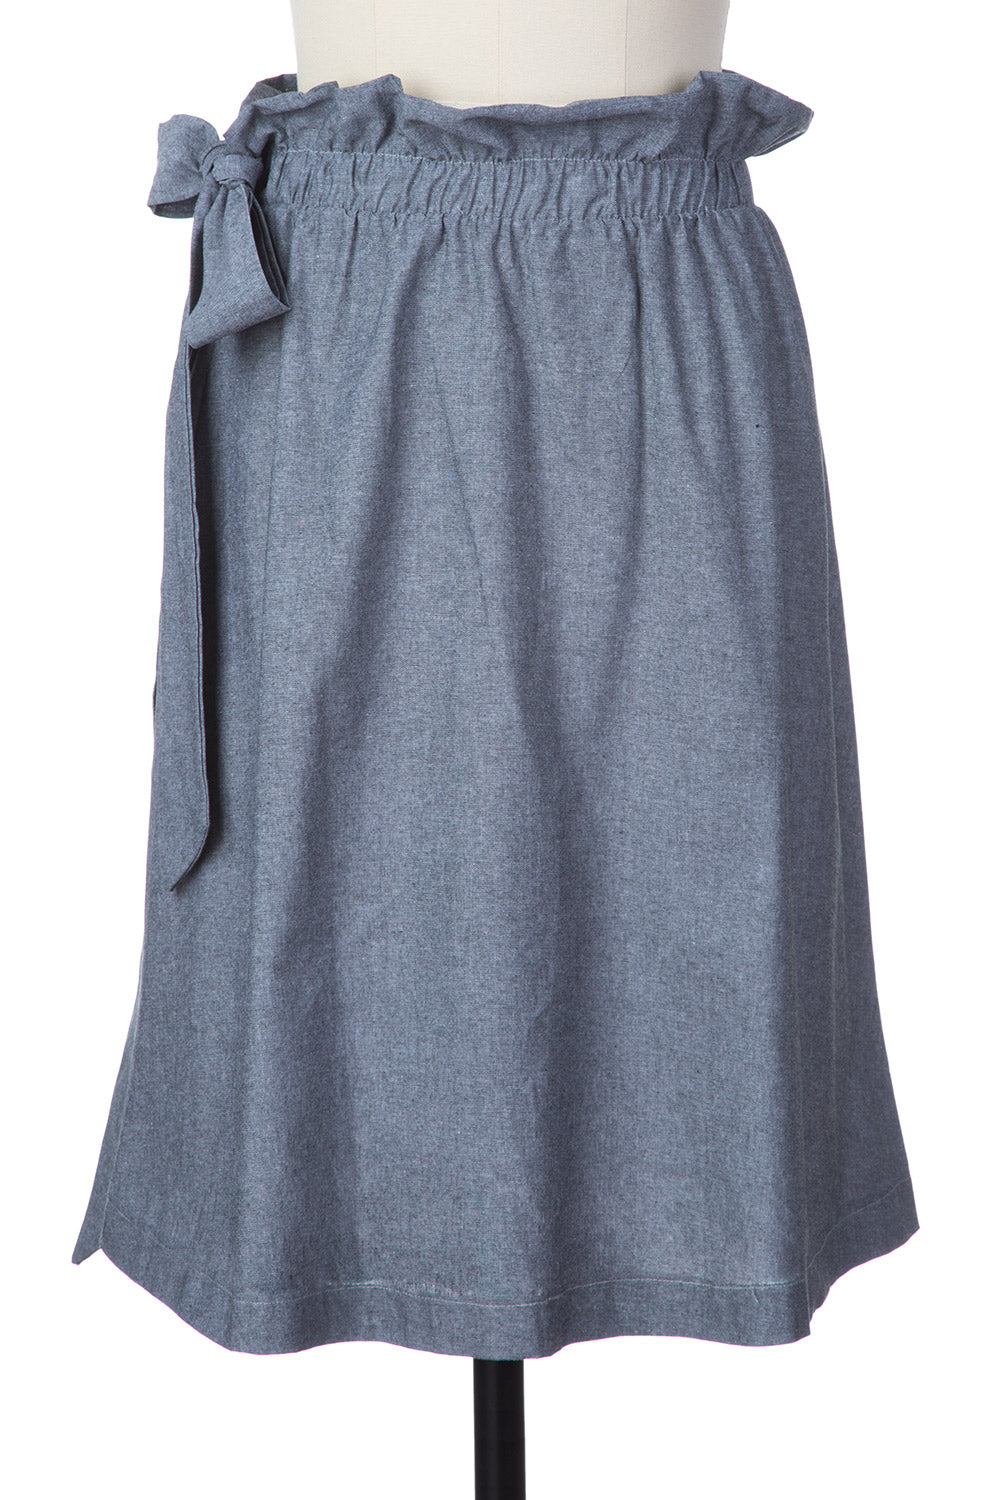 Type 2 Haute Couture Skirt in Gray